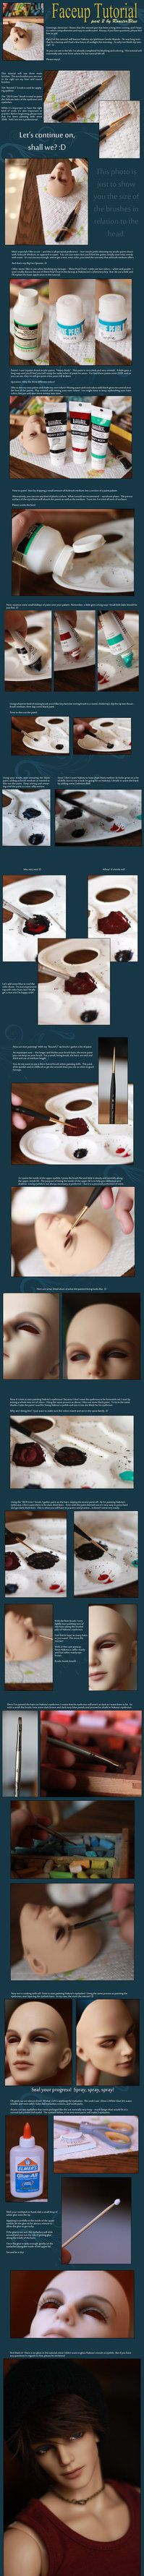 BJD Faceup Tutorial - Part 2 by RoosterBlue